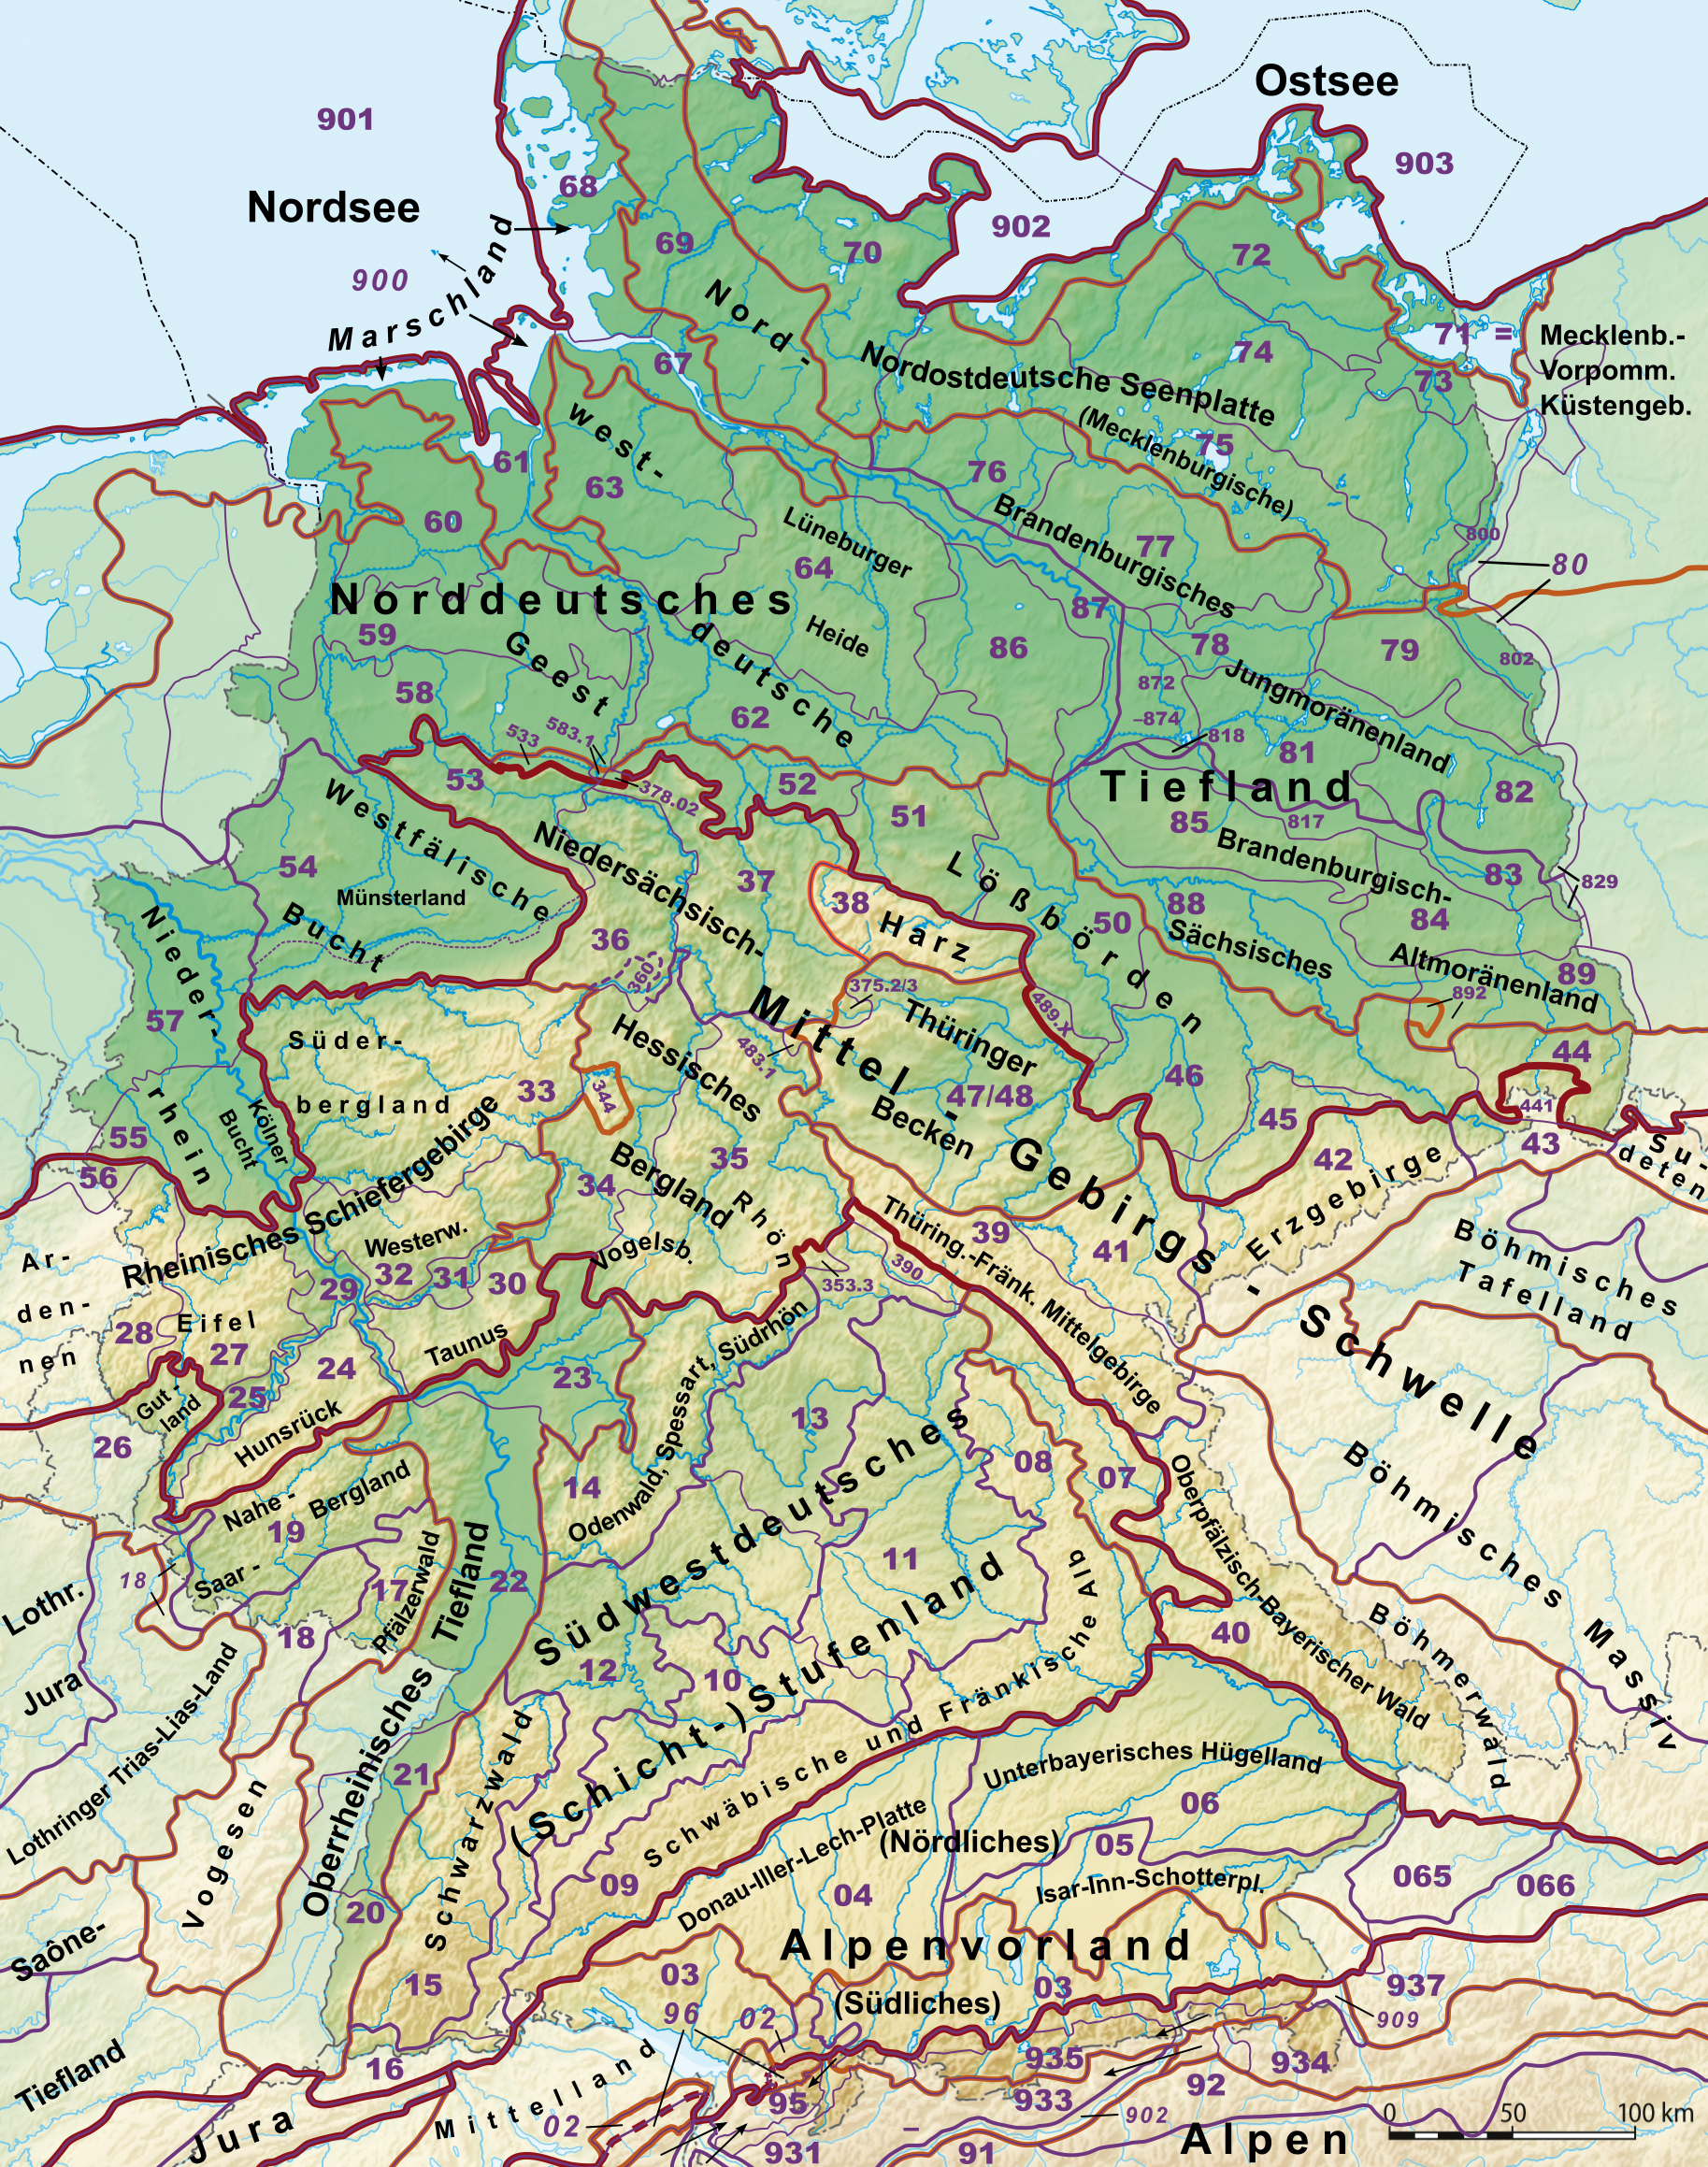 Naturraeumliche Grossregionen Deutschlands plus.png